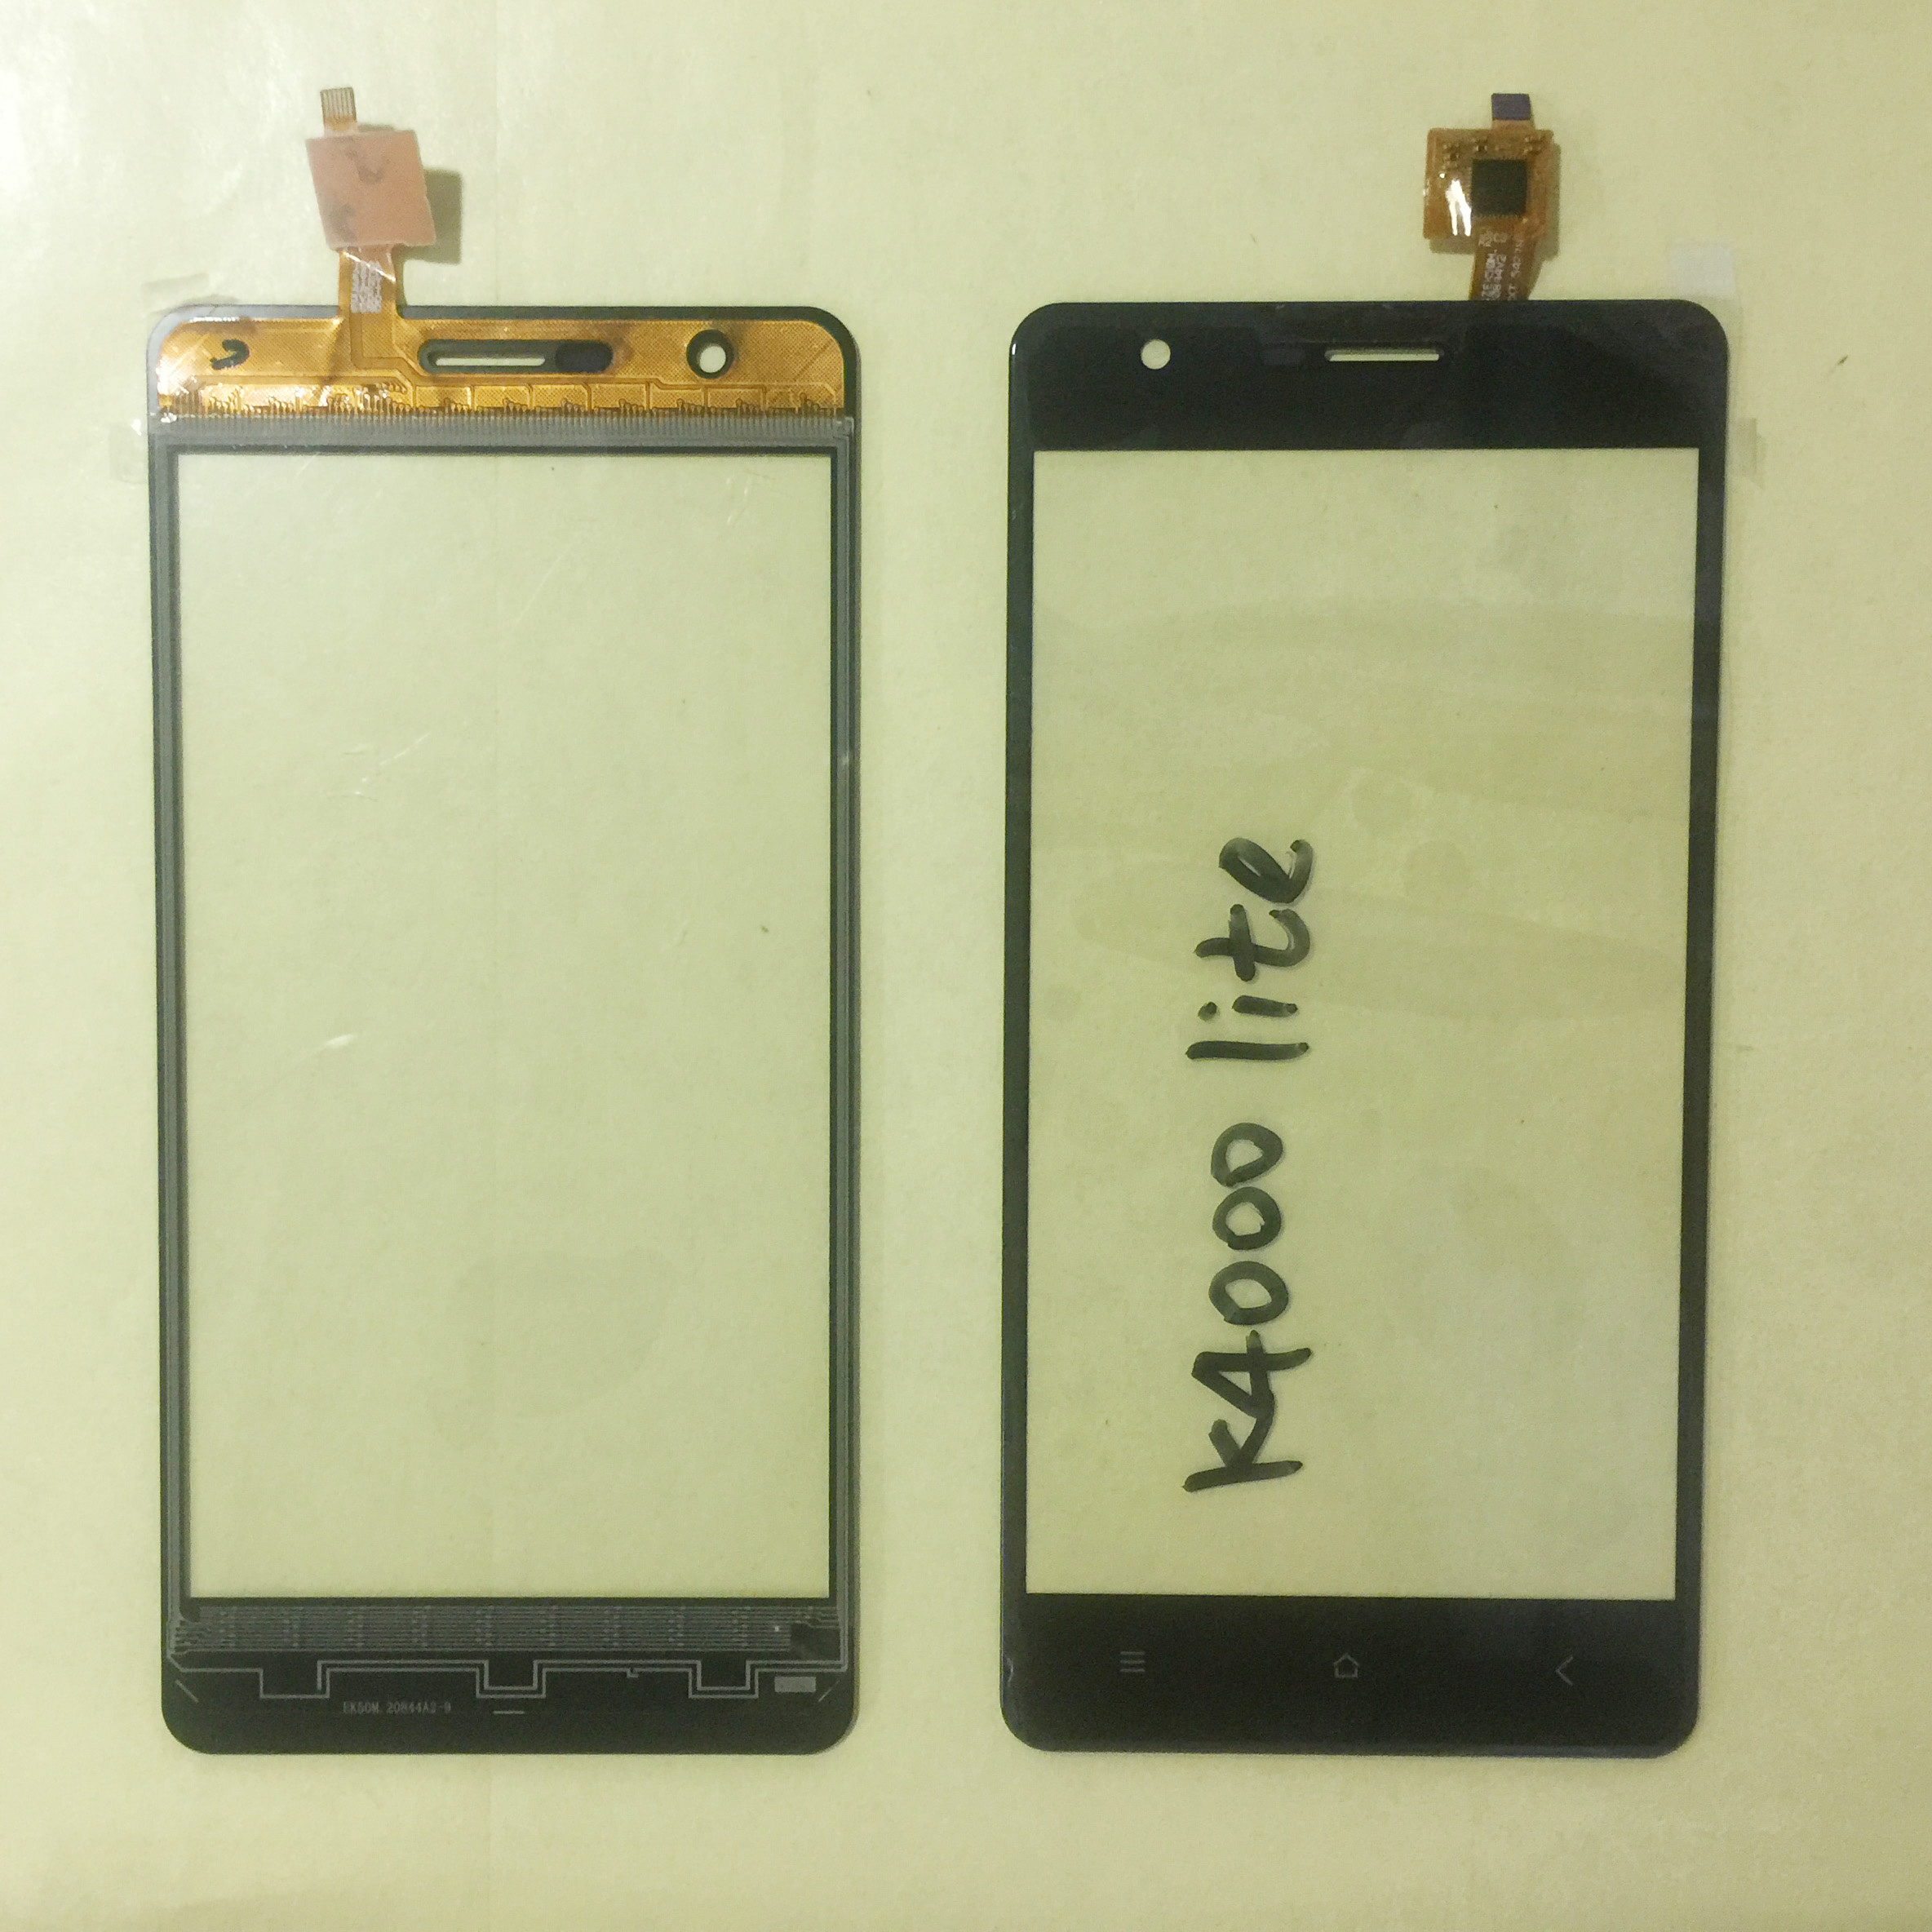 5.0'' Mobile Phone Touch Glass For <font><b>Oukitel</b></font> <font><b>K4000</b></font> Lite Touch Screen Glass Digitizer Panel Lens Sensor No LCD Display image